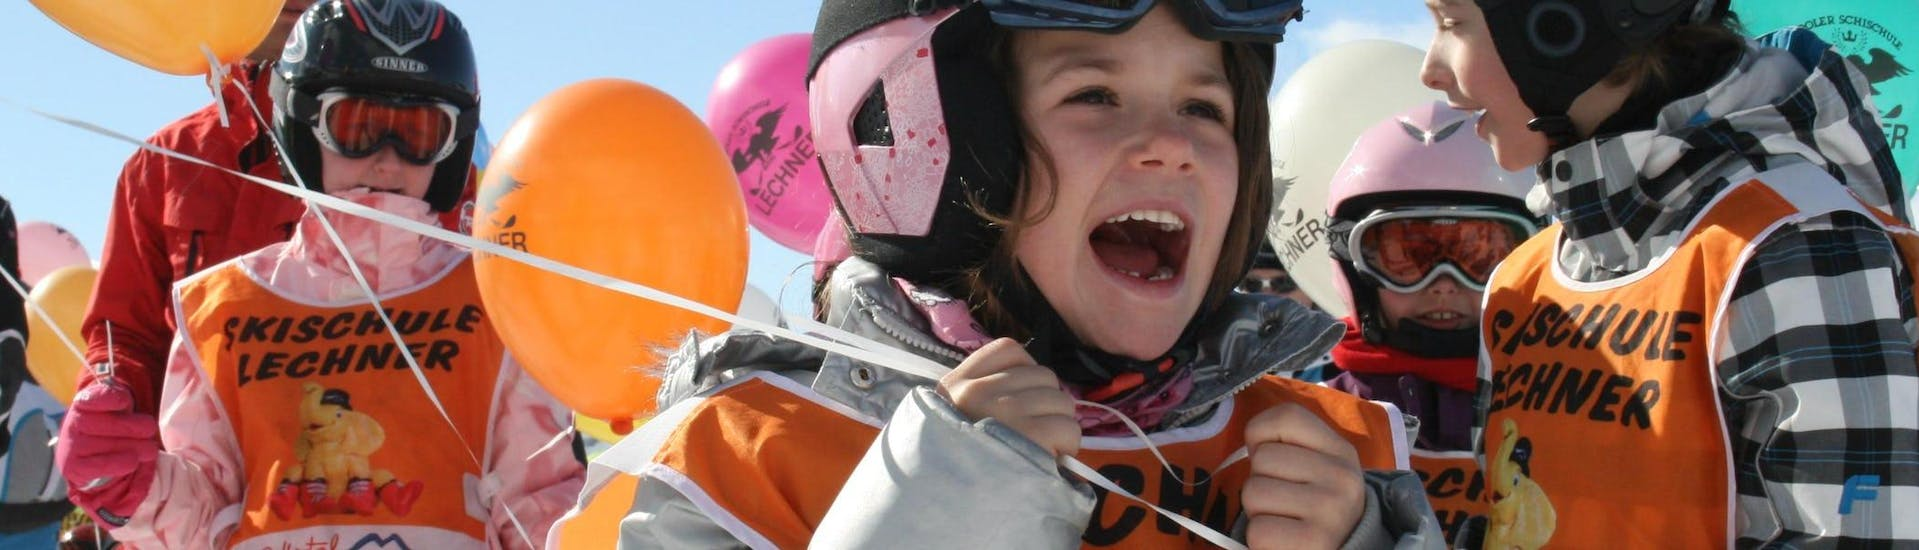 Several children taking part in the Kids Ski Lessons and Day Nursery - (3-5 years) organised by the ski school Skischule Lechner are holding balloons with the ski school's logo printed on them.